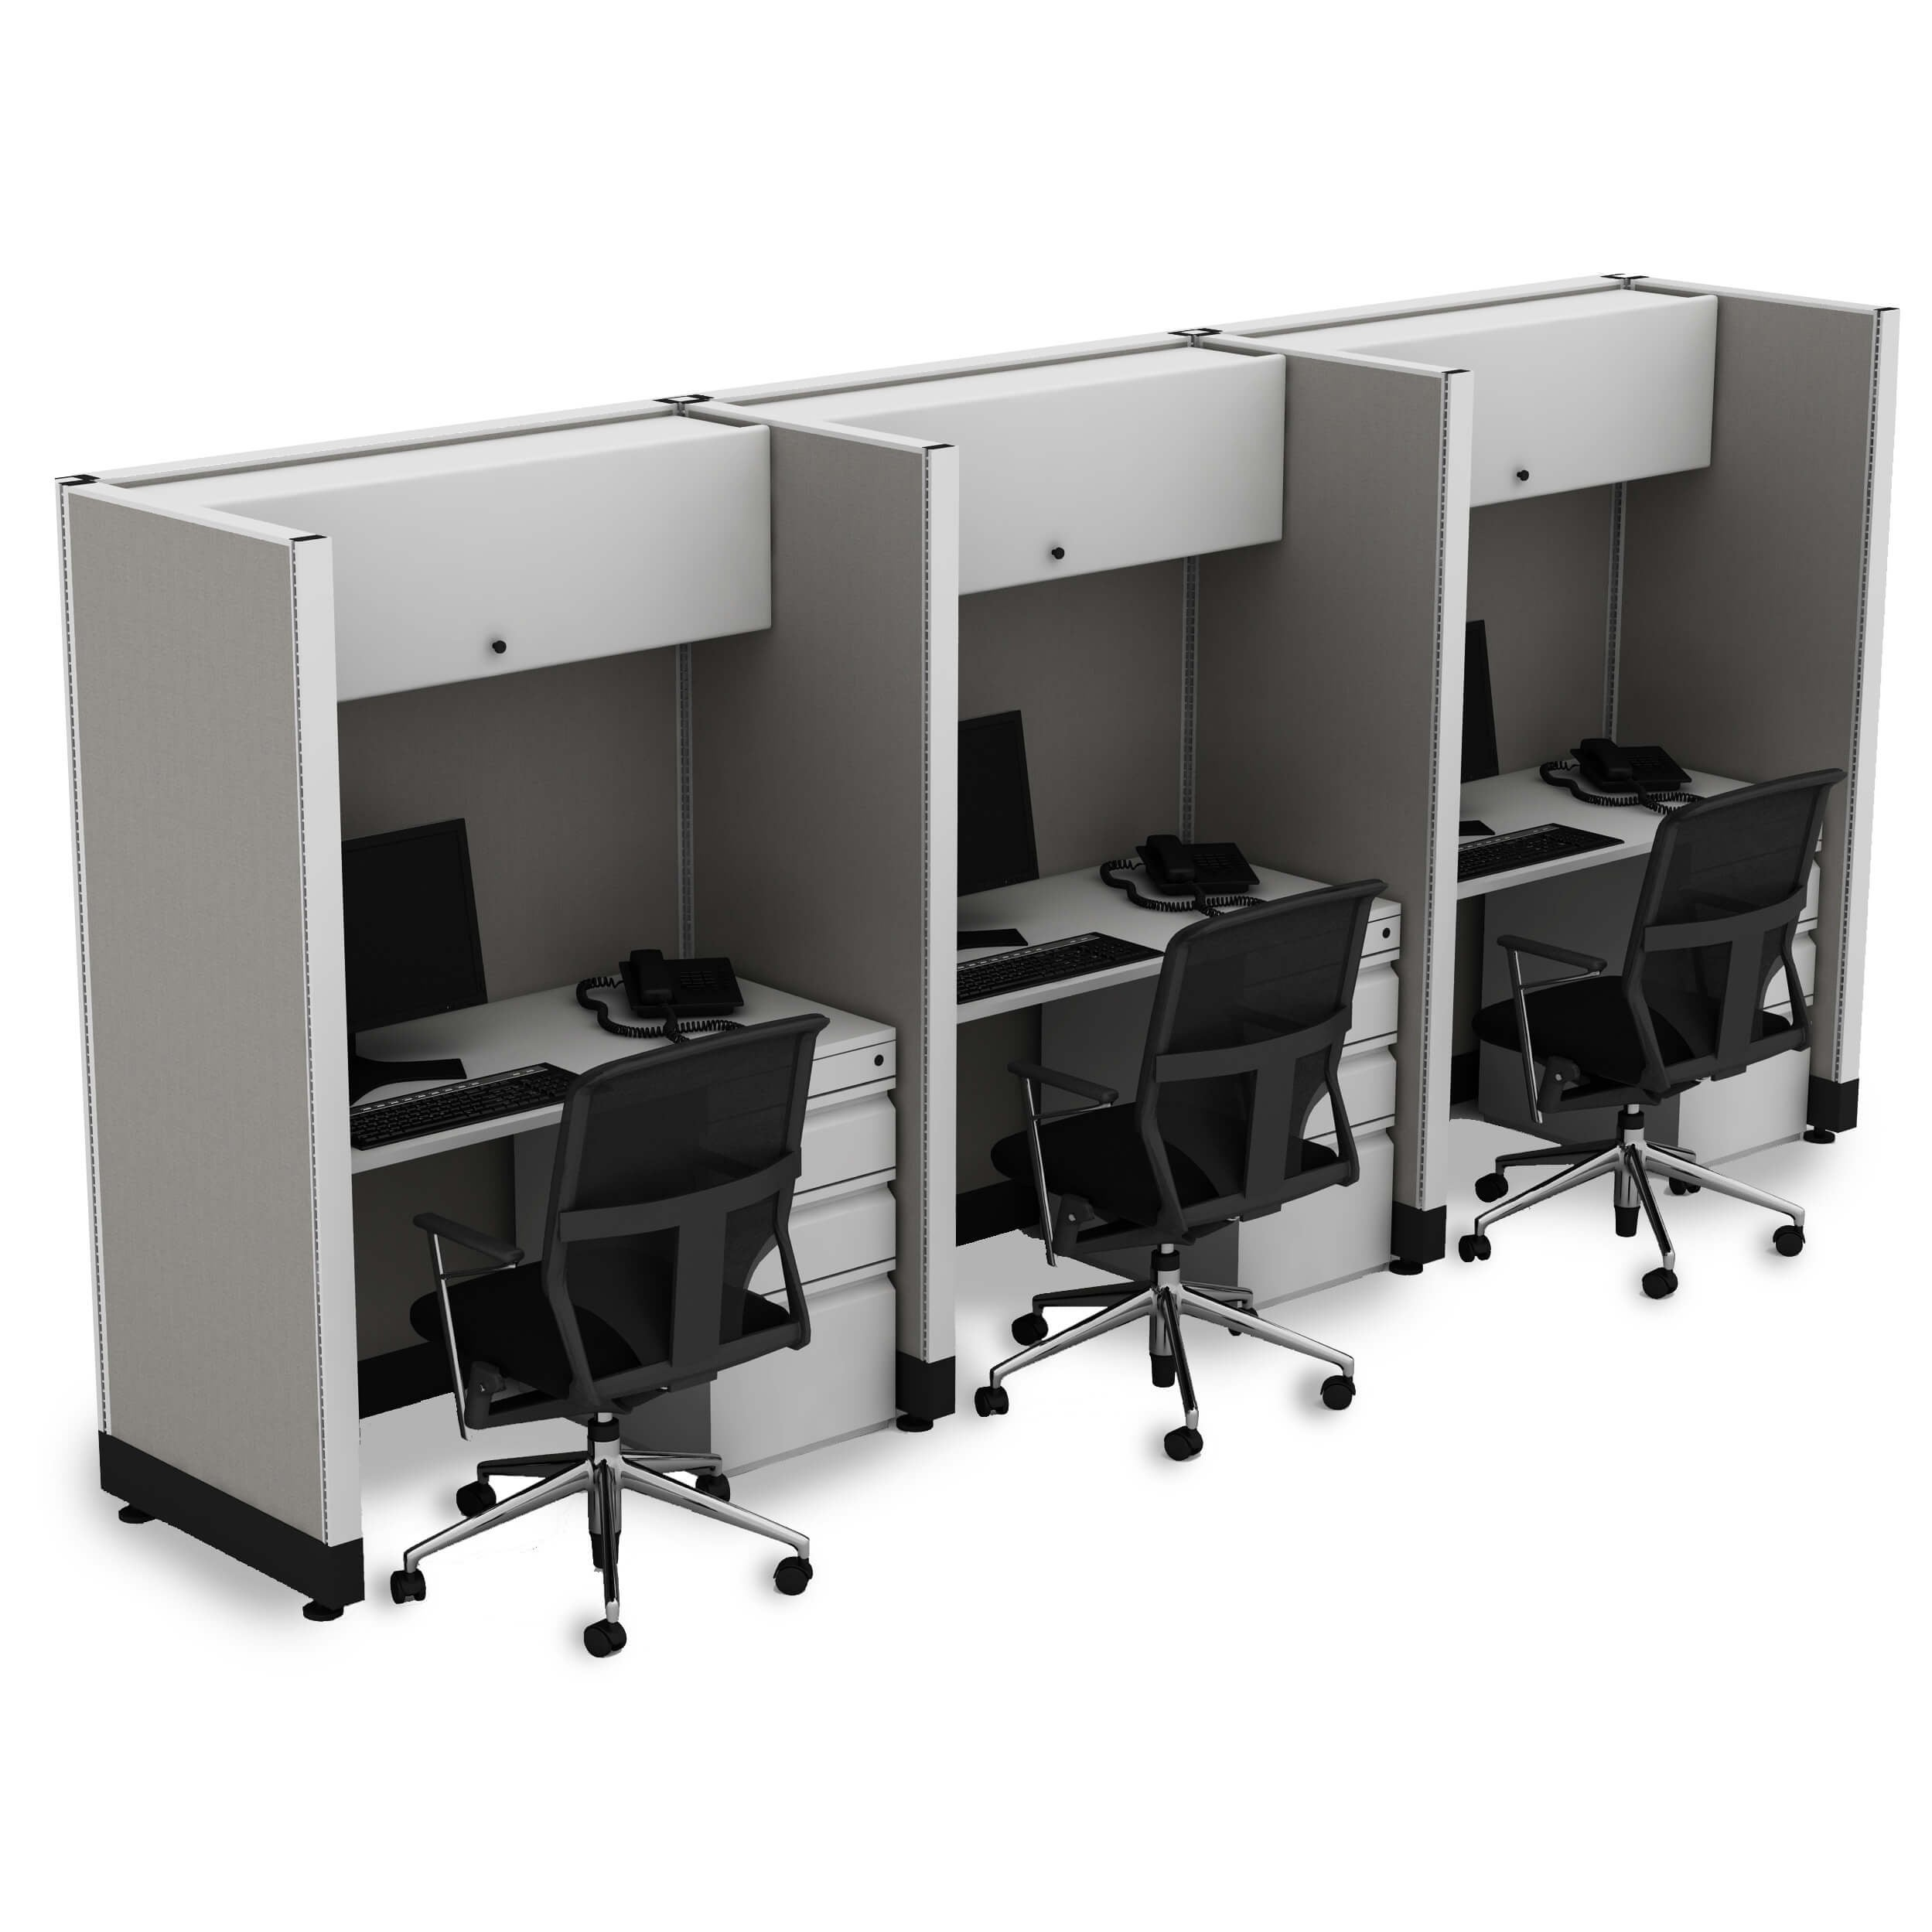 Hoteling Stations 67H 3pack Inline Powered (4x4 - Walnut Desk Silver Paint - Assembly Required)